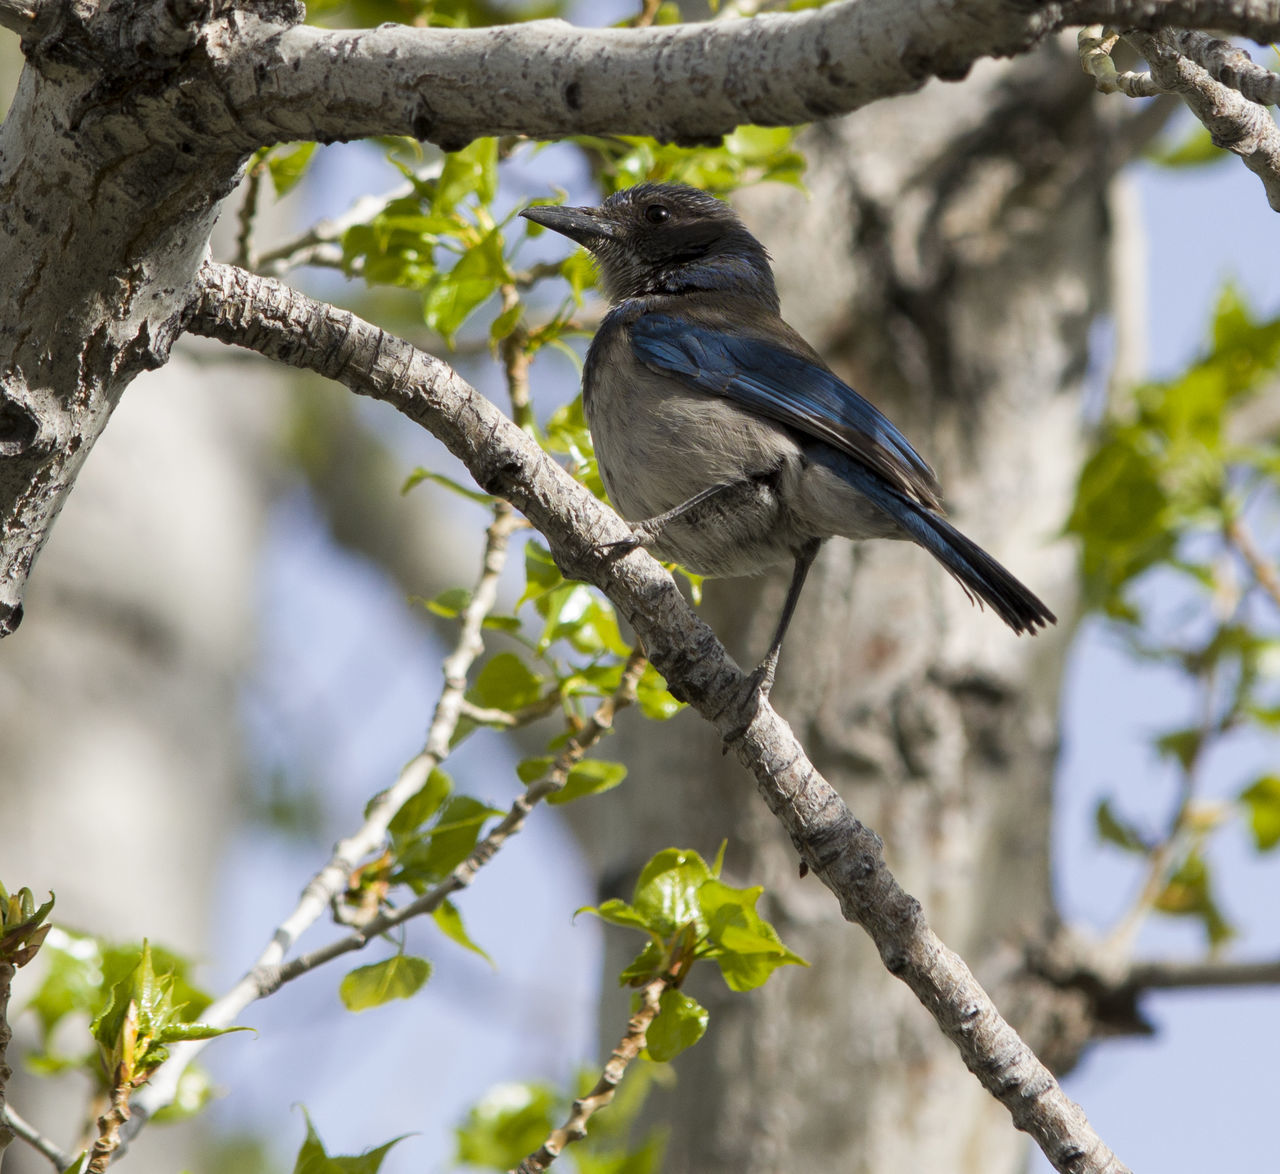 Animal Animal Themes Avian Beauty In Nature Bird Birds In Branches Branch Close-up Day Focus On Foreground Growth Low Angle View Nature No People Outdoors Perching Selective Focus Sky Tree Tree Trunk Twig Western Scrub Jay Wildlife